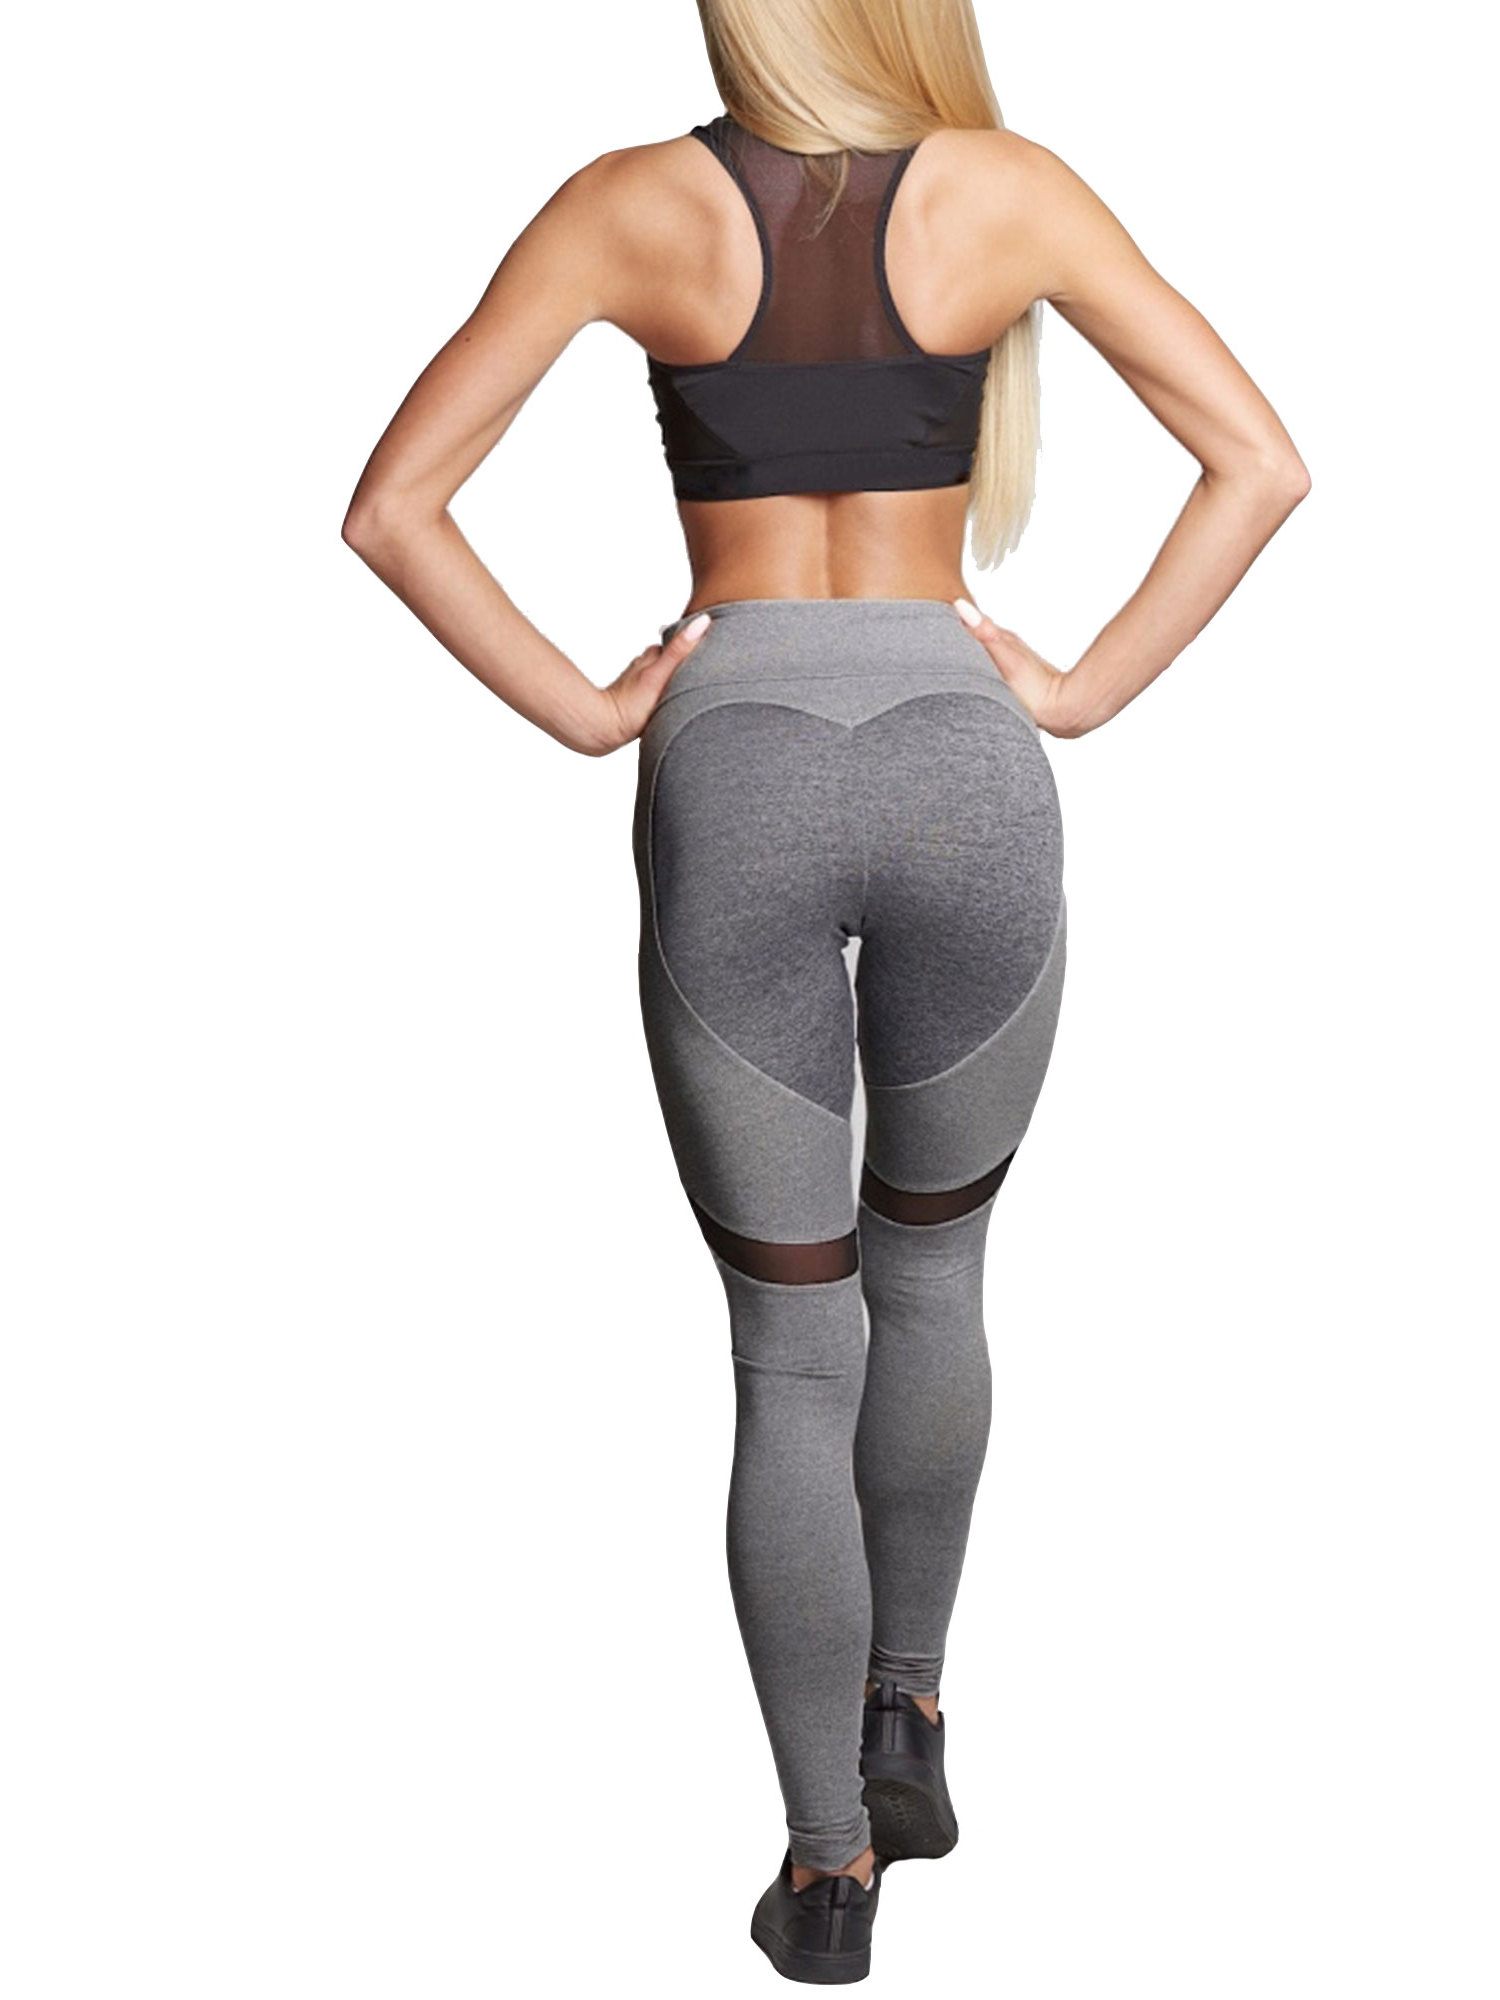 Heart Womens Yoga Pants Workout Gym Sports Leggings Fitness Stretch Trouser Pant